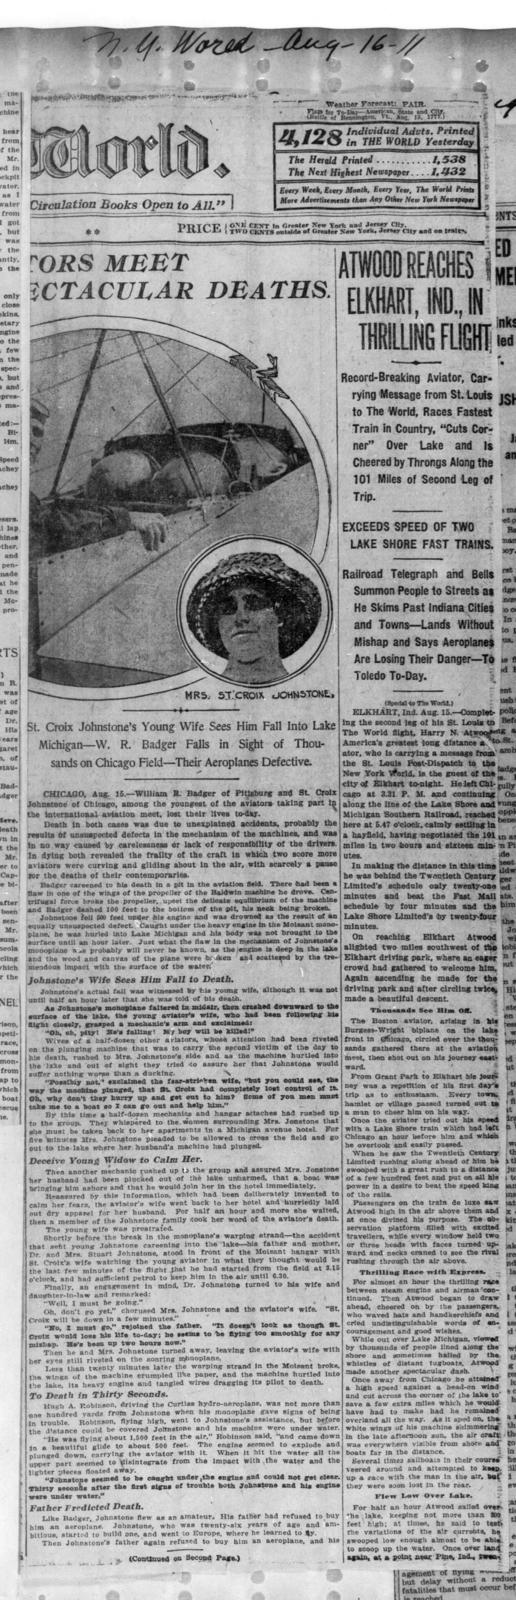 Two Aviators Meet Spectacular Deaths; and Atwood Reaches Elkhart, Ind., in Thrilling Flight [New York World, 16 August 1911]